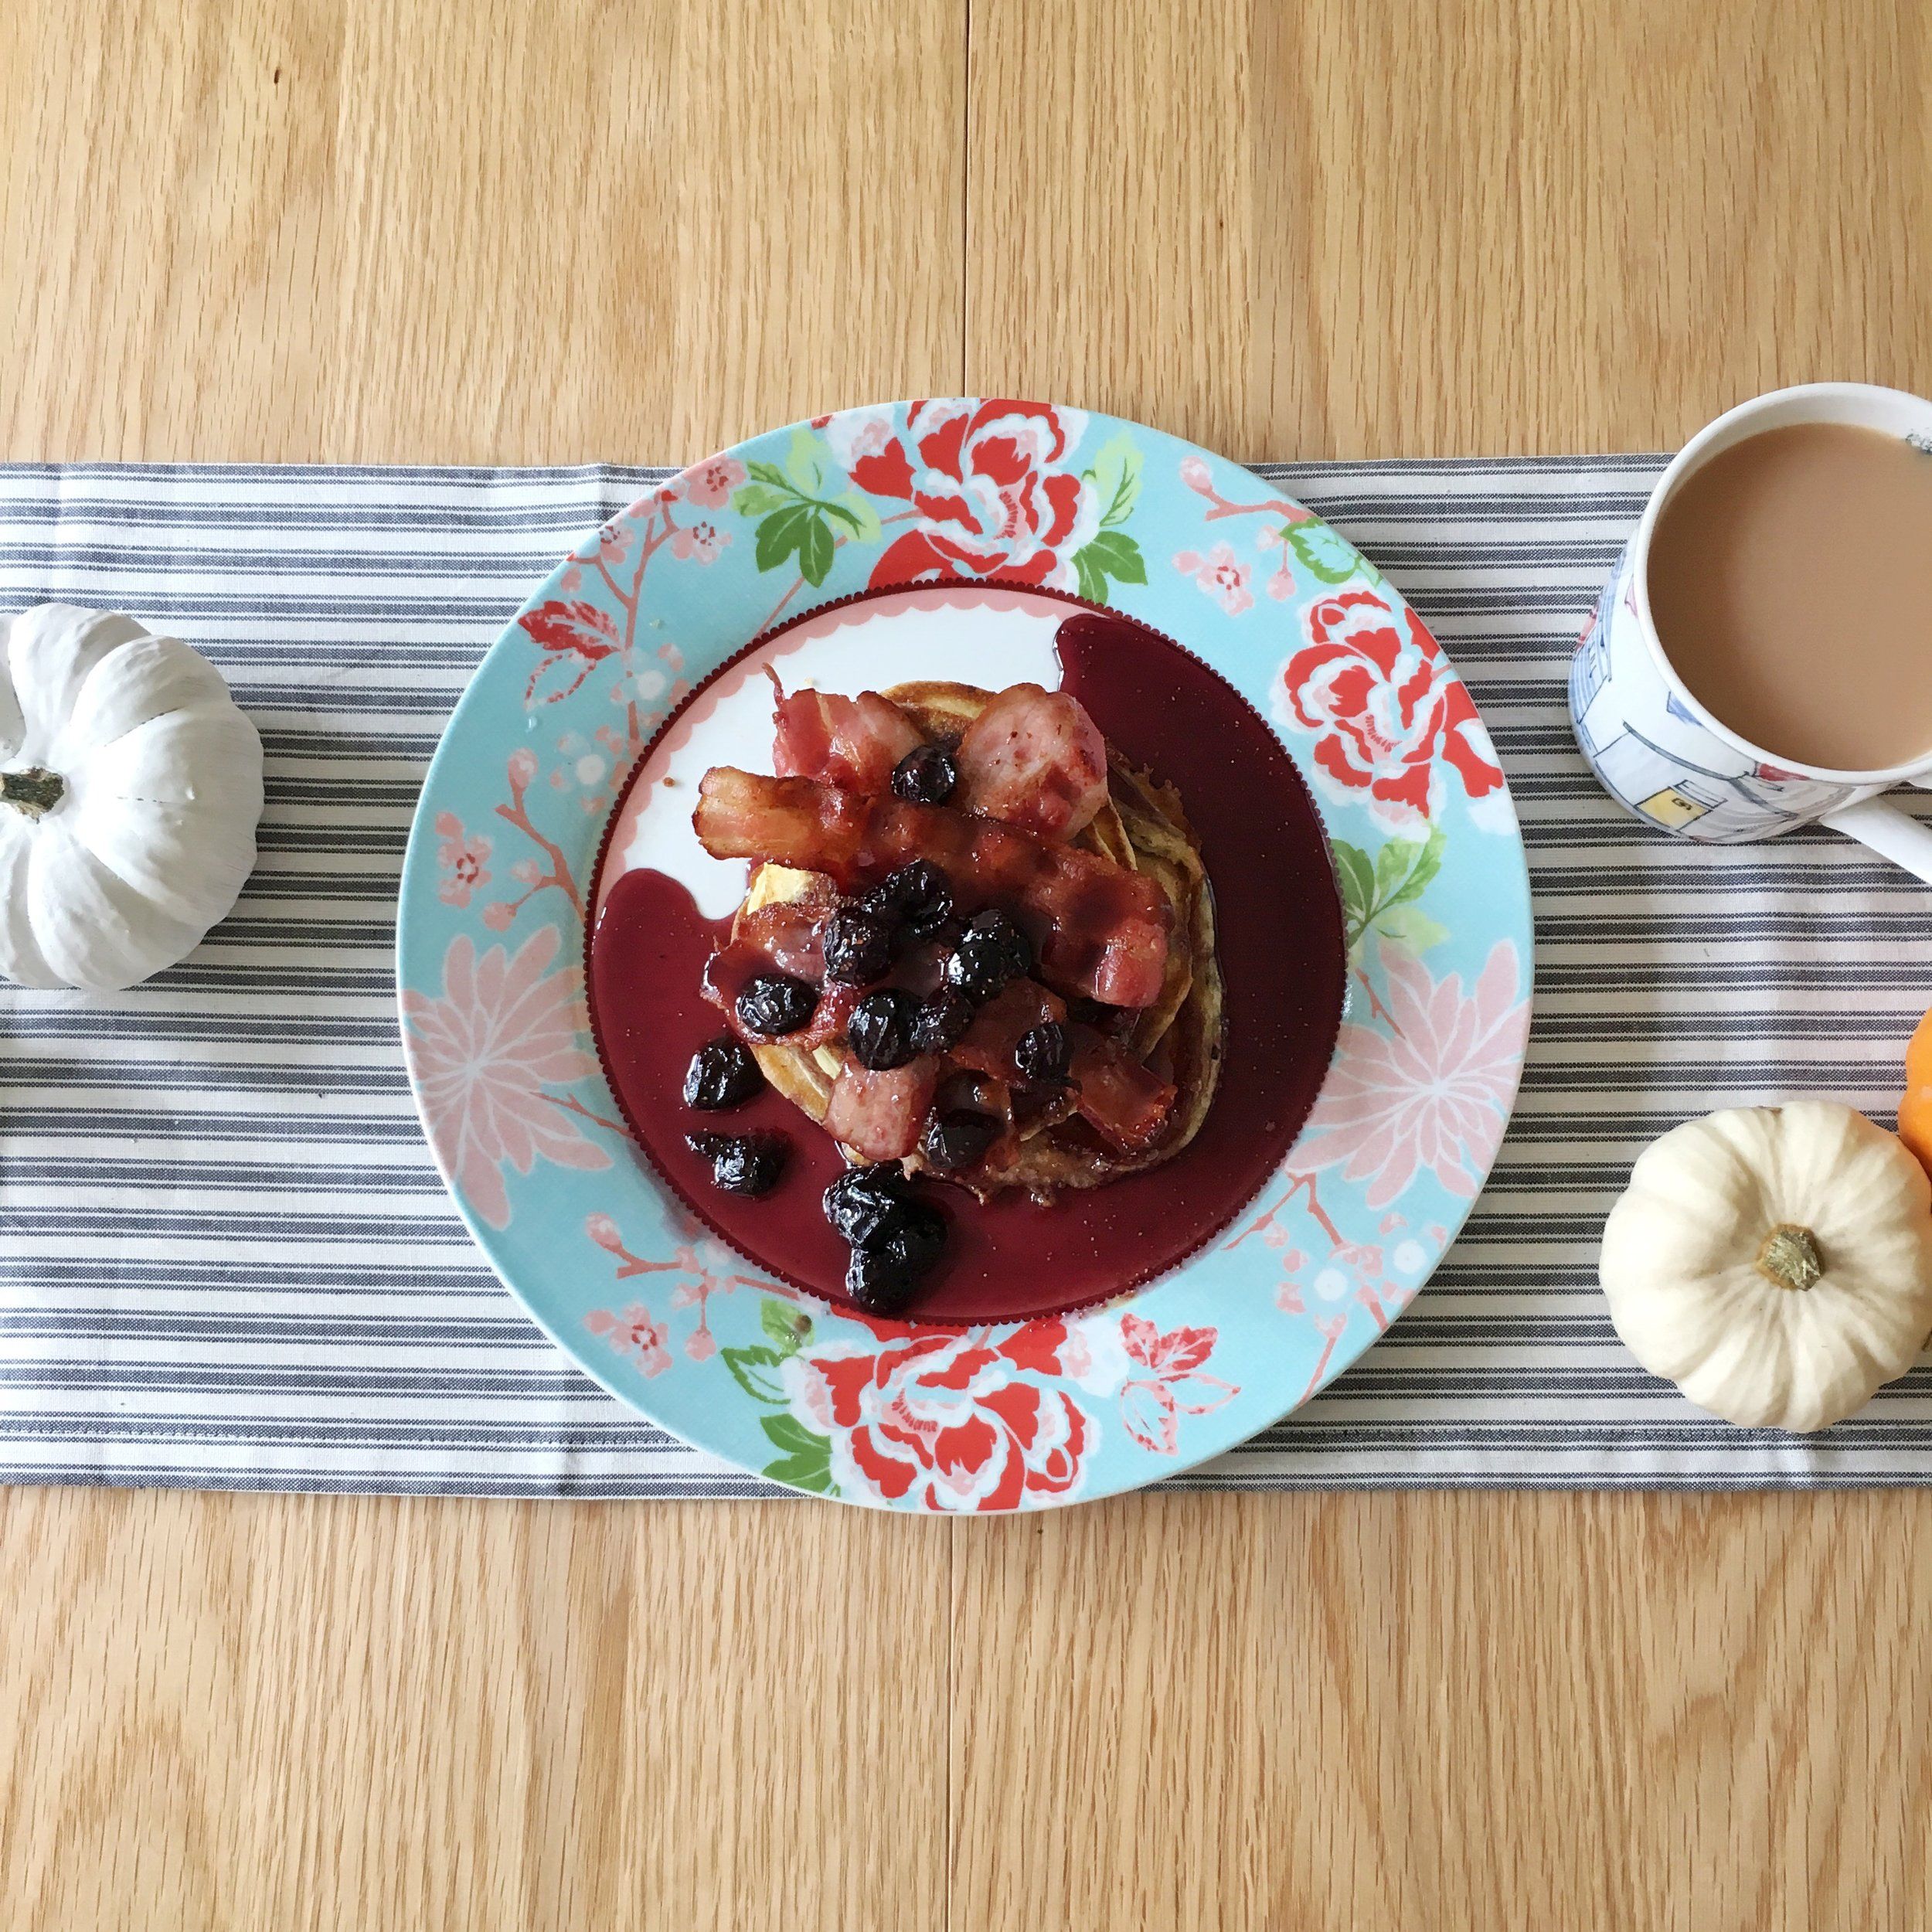 Gluten free pancakes with blueberry maple syrup and bacon